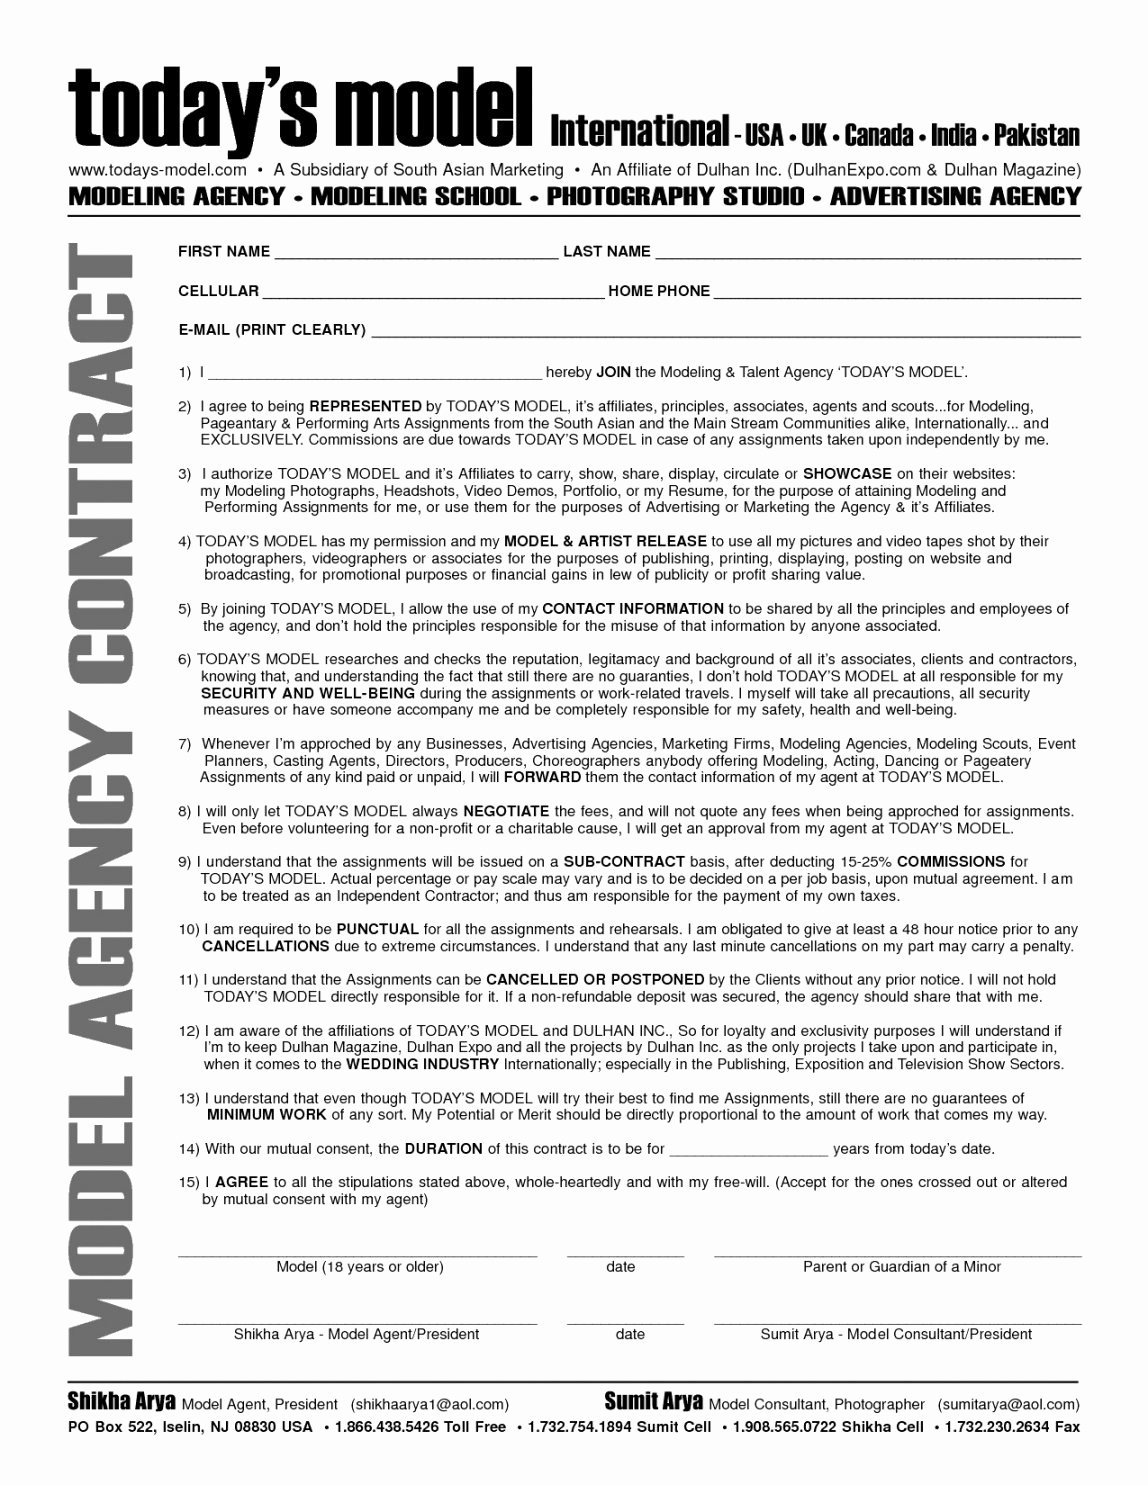 Videography Contract Template Free Fresh 018 Wedding Videography Contract Template Ideas Video